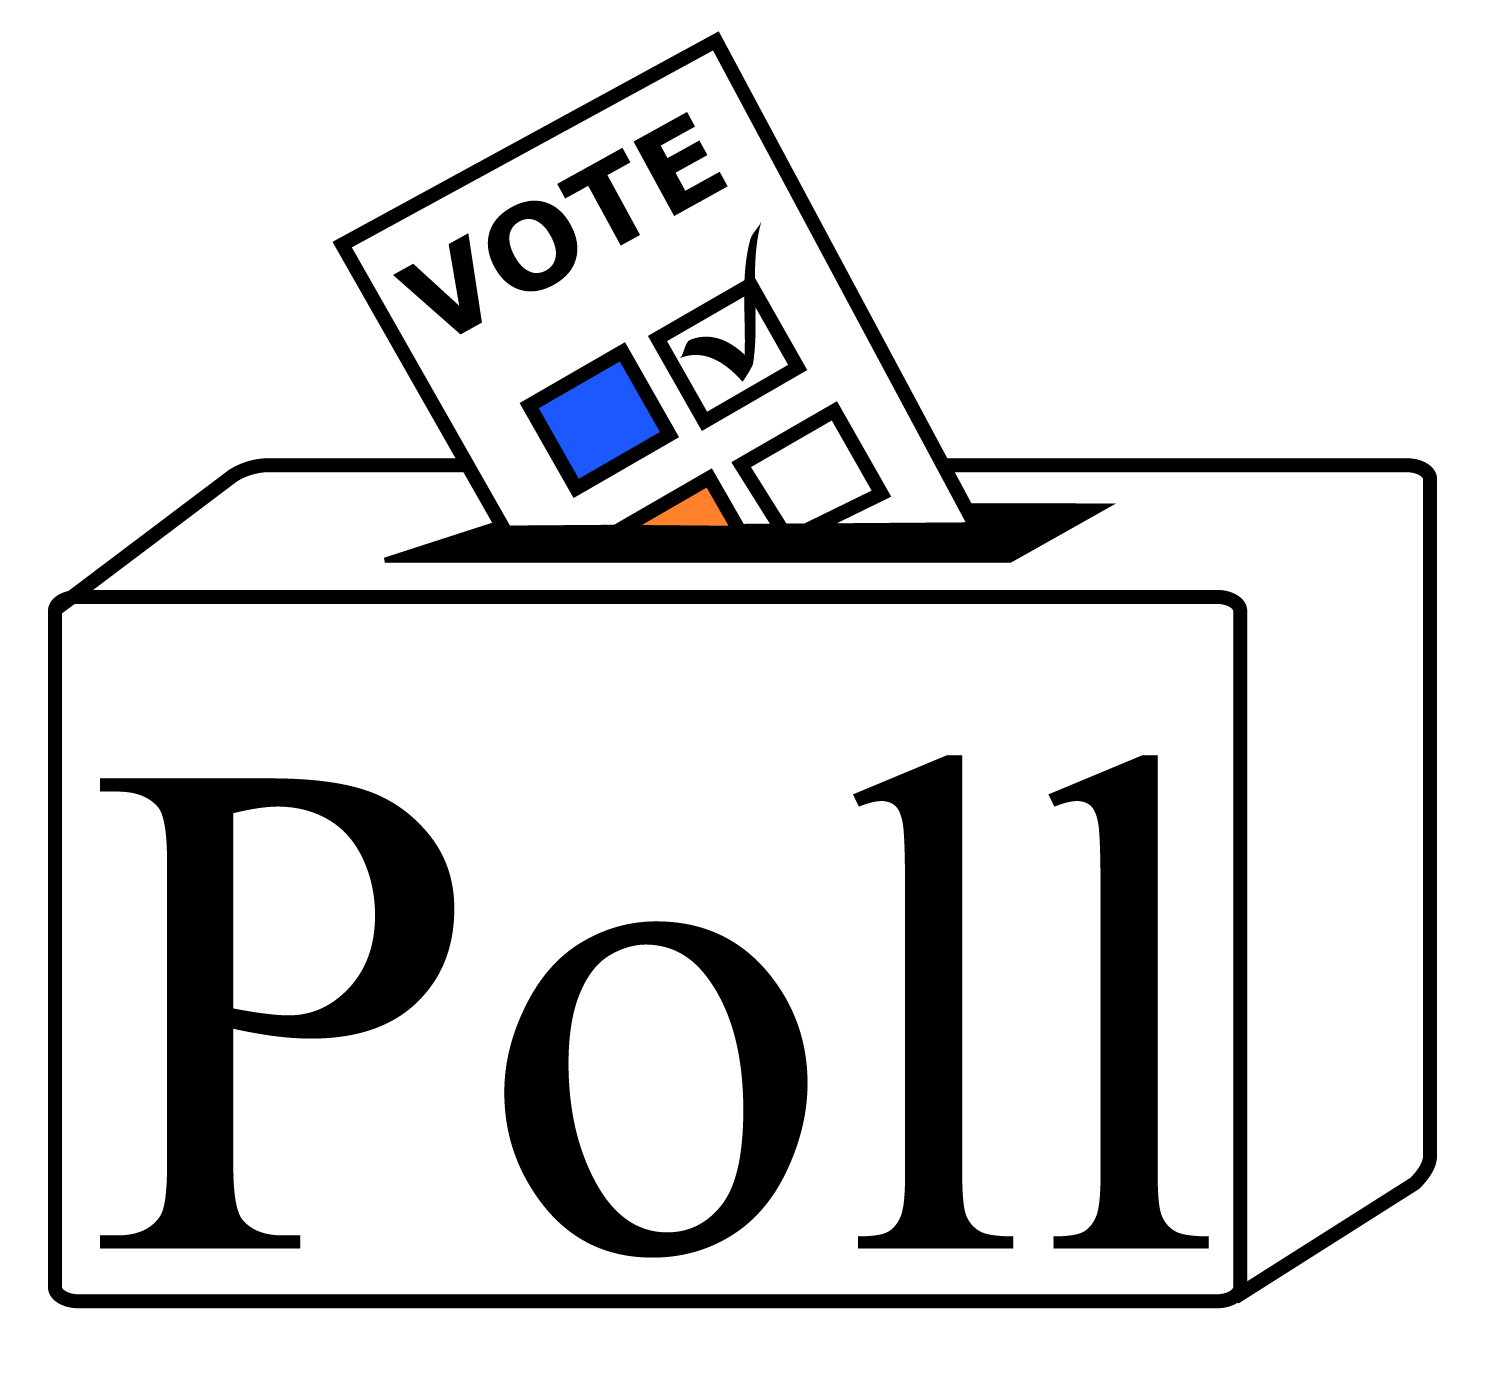 Voting clipart voting poll, Voting voting poll Transparent.